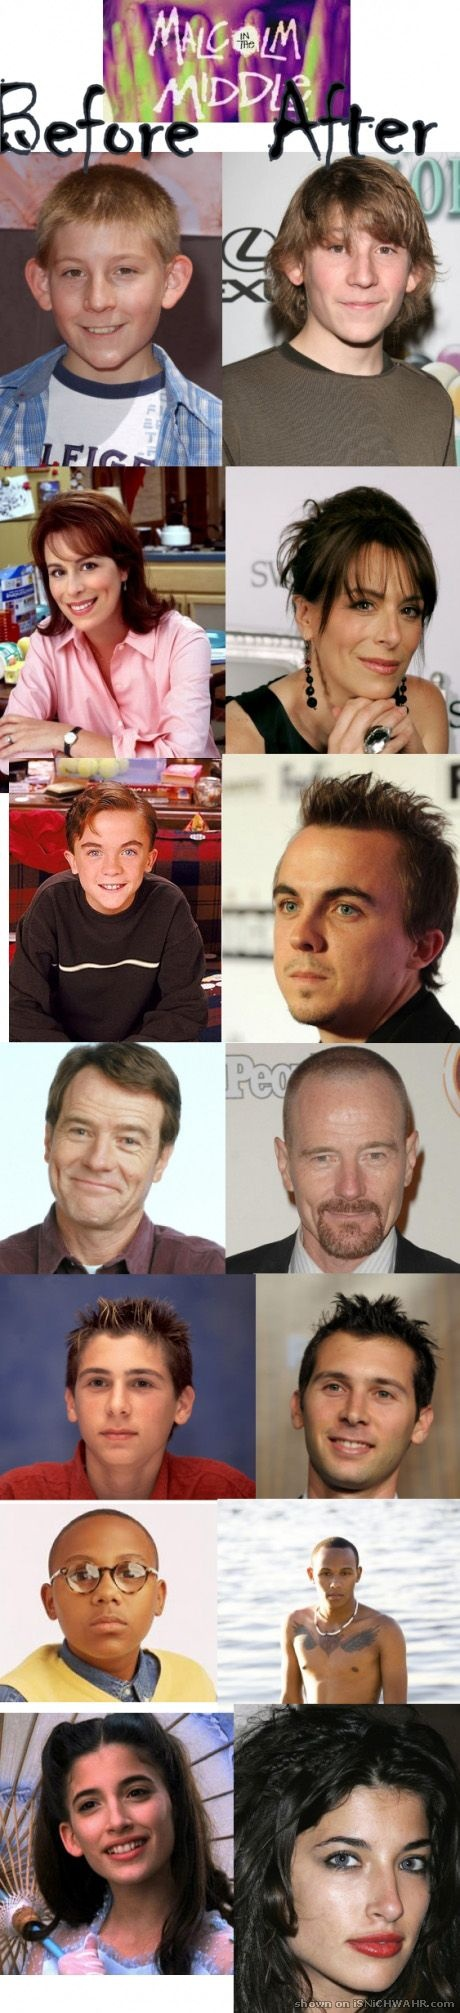 Malcolm in the Middle: Then and Now | The middle cast, The ...